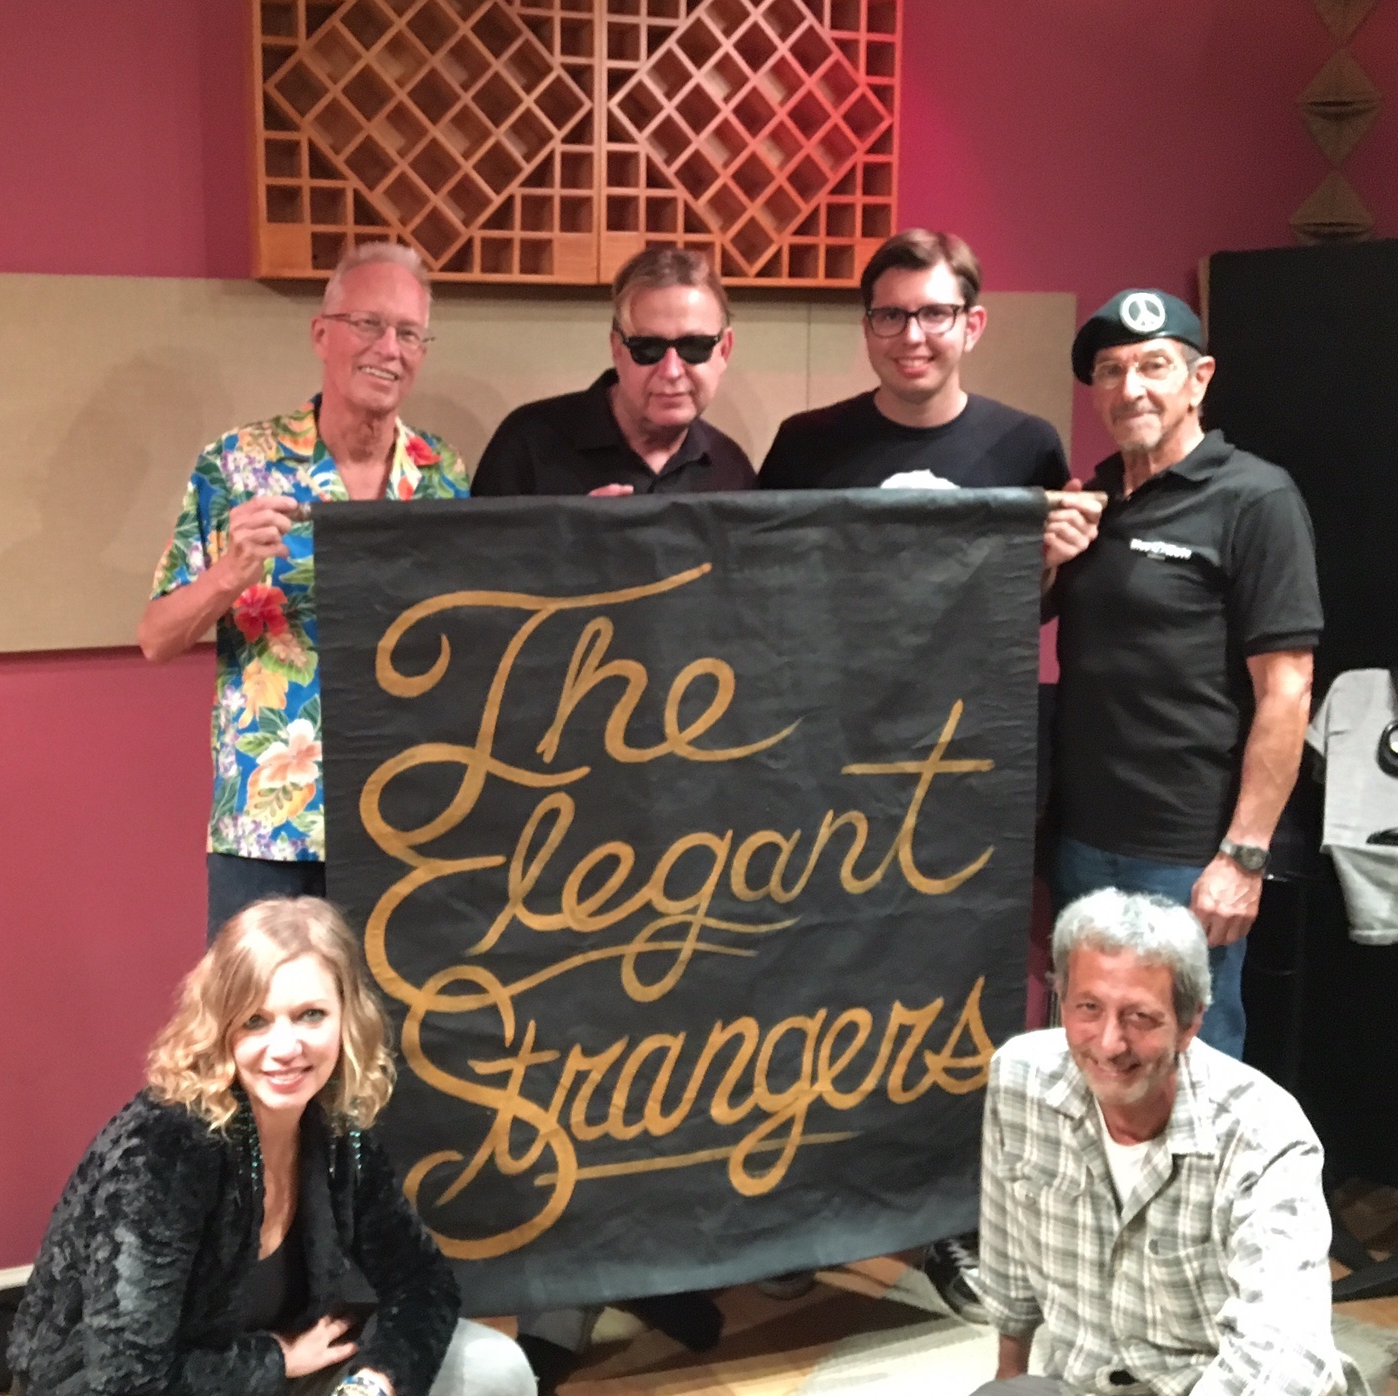 The Elegant Strangers are a band based in Venice Beach, CA